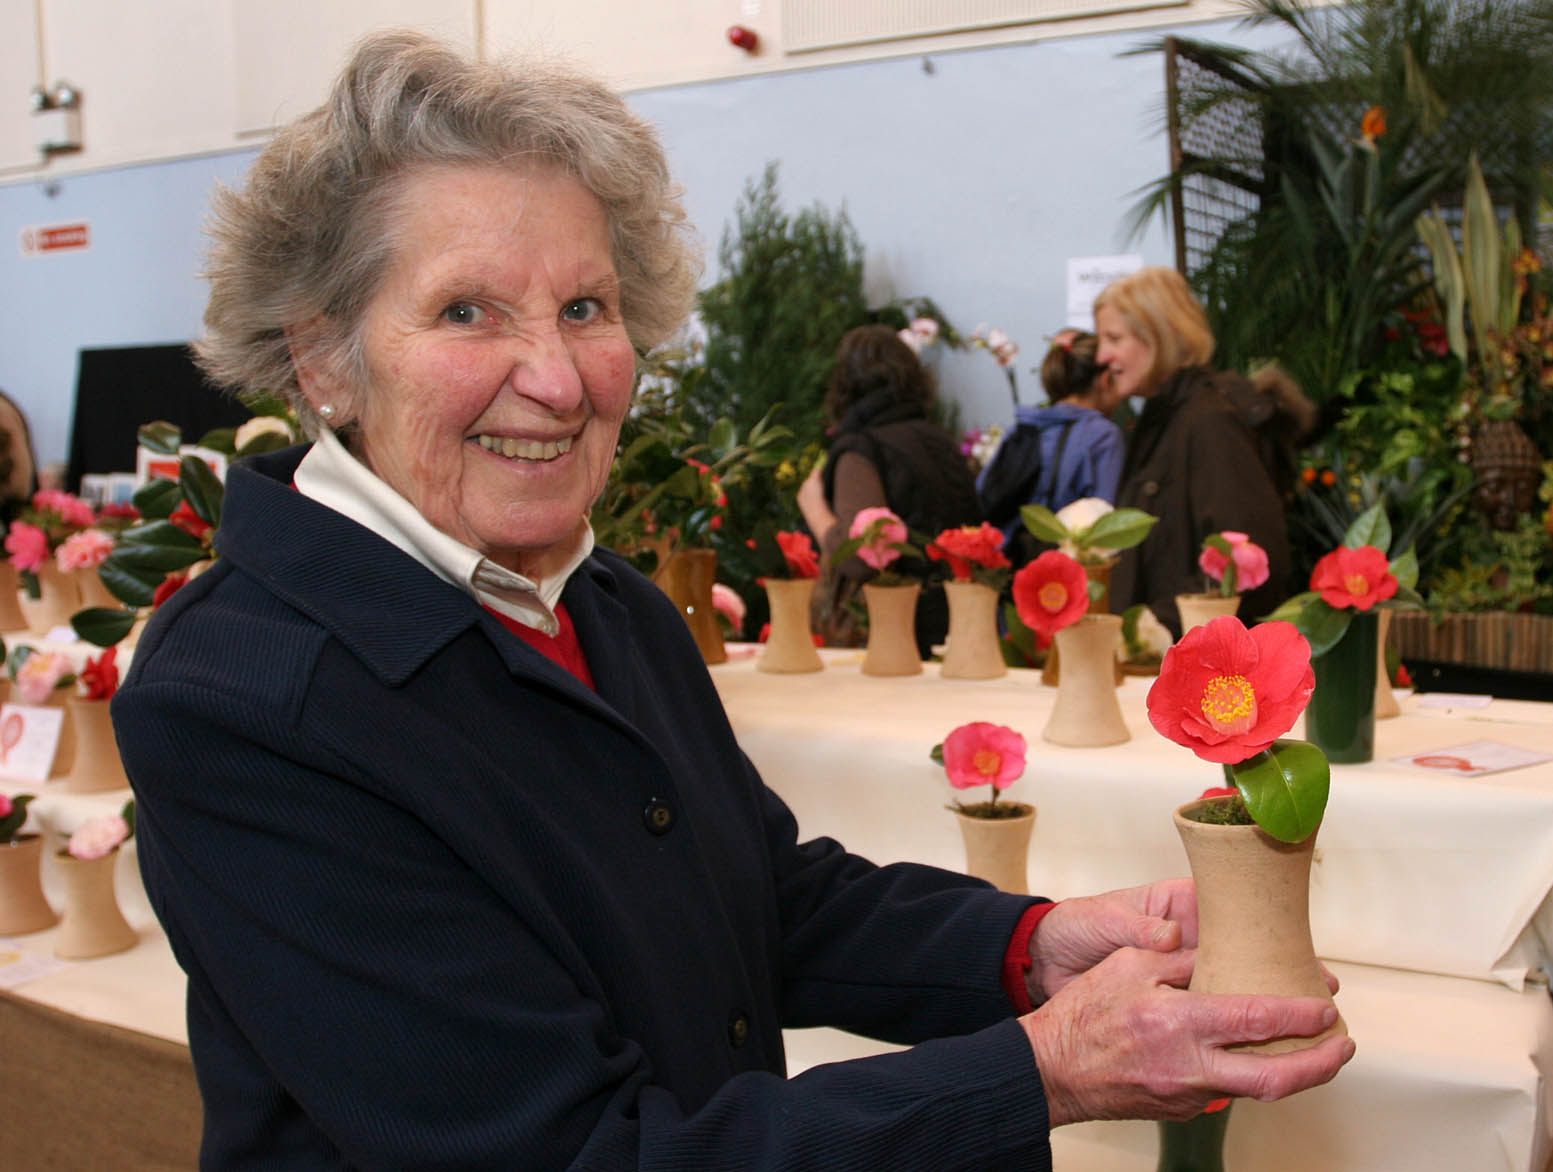 The 84th West Cornwall Spring Show organised by The West Cornwall Horticultural Society in St JohnÕs Hall Penzance. Elizabeth Bolitho with her 1st prize winning Camellia. Pic by Roger Pope/CIOSP